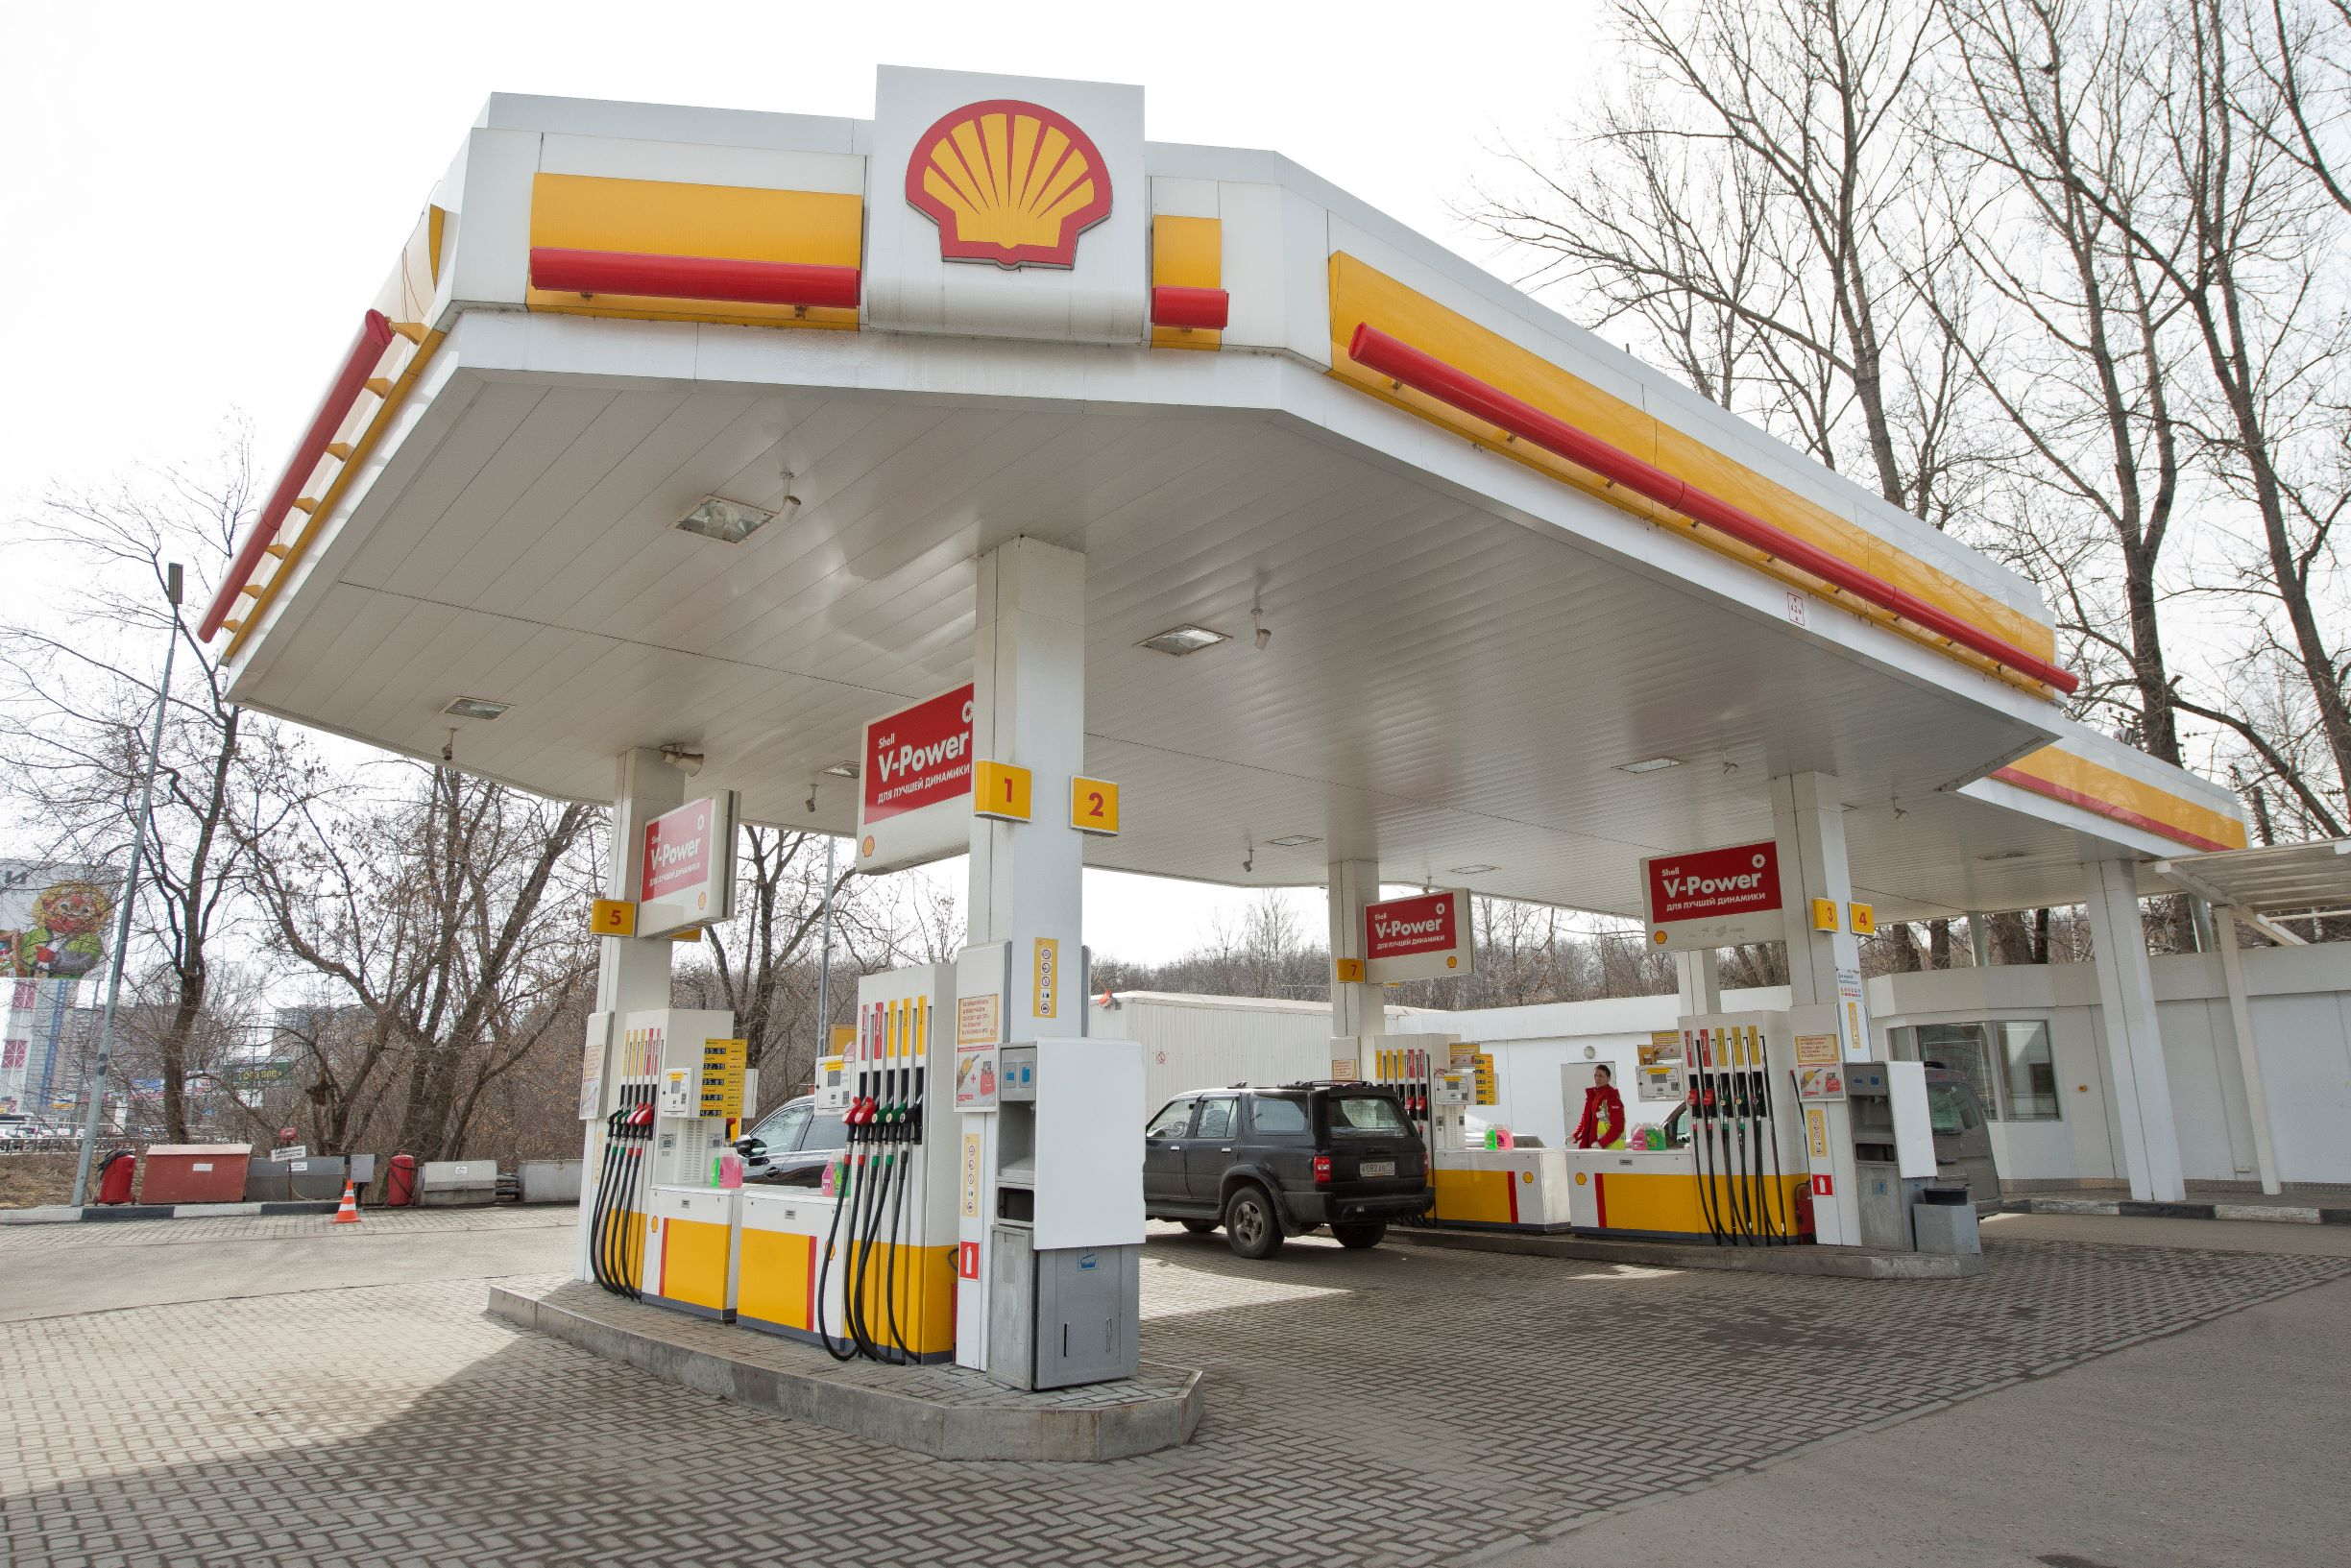 exterior of Shell gas station